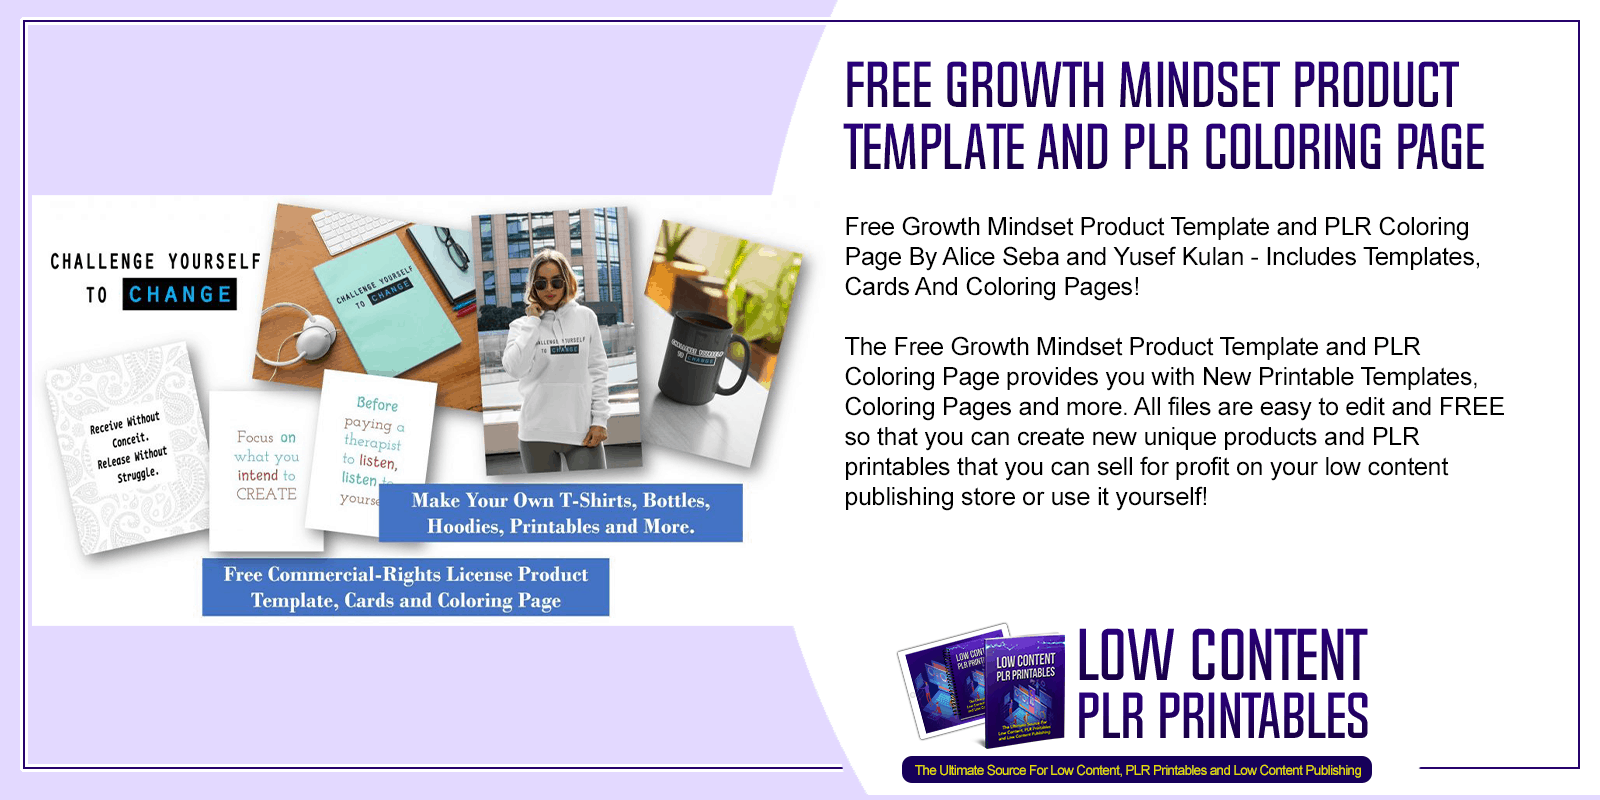 Free Growth Mindset Product Template and PLR Coloring Page